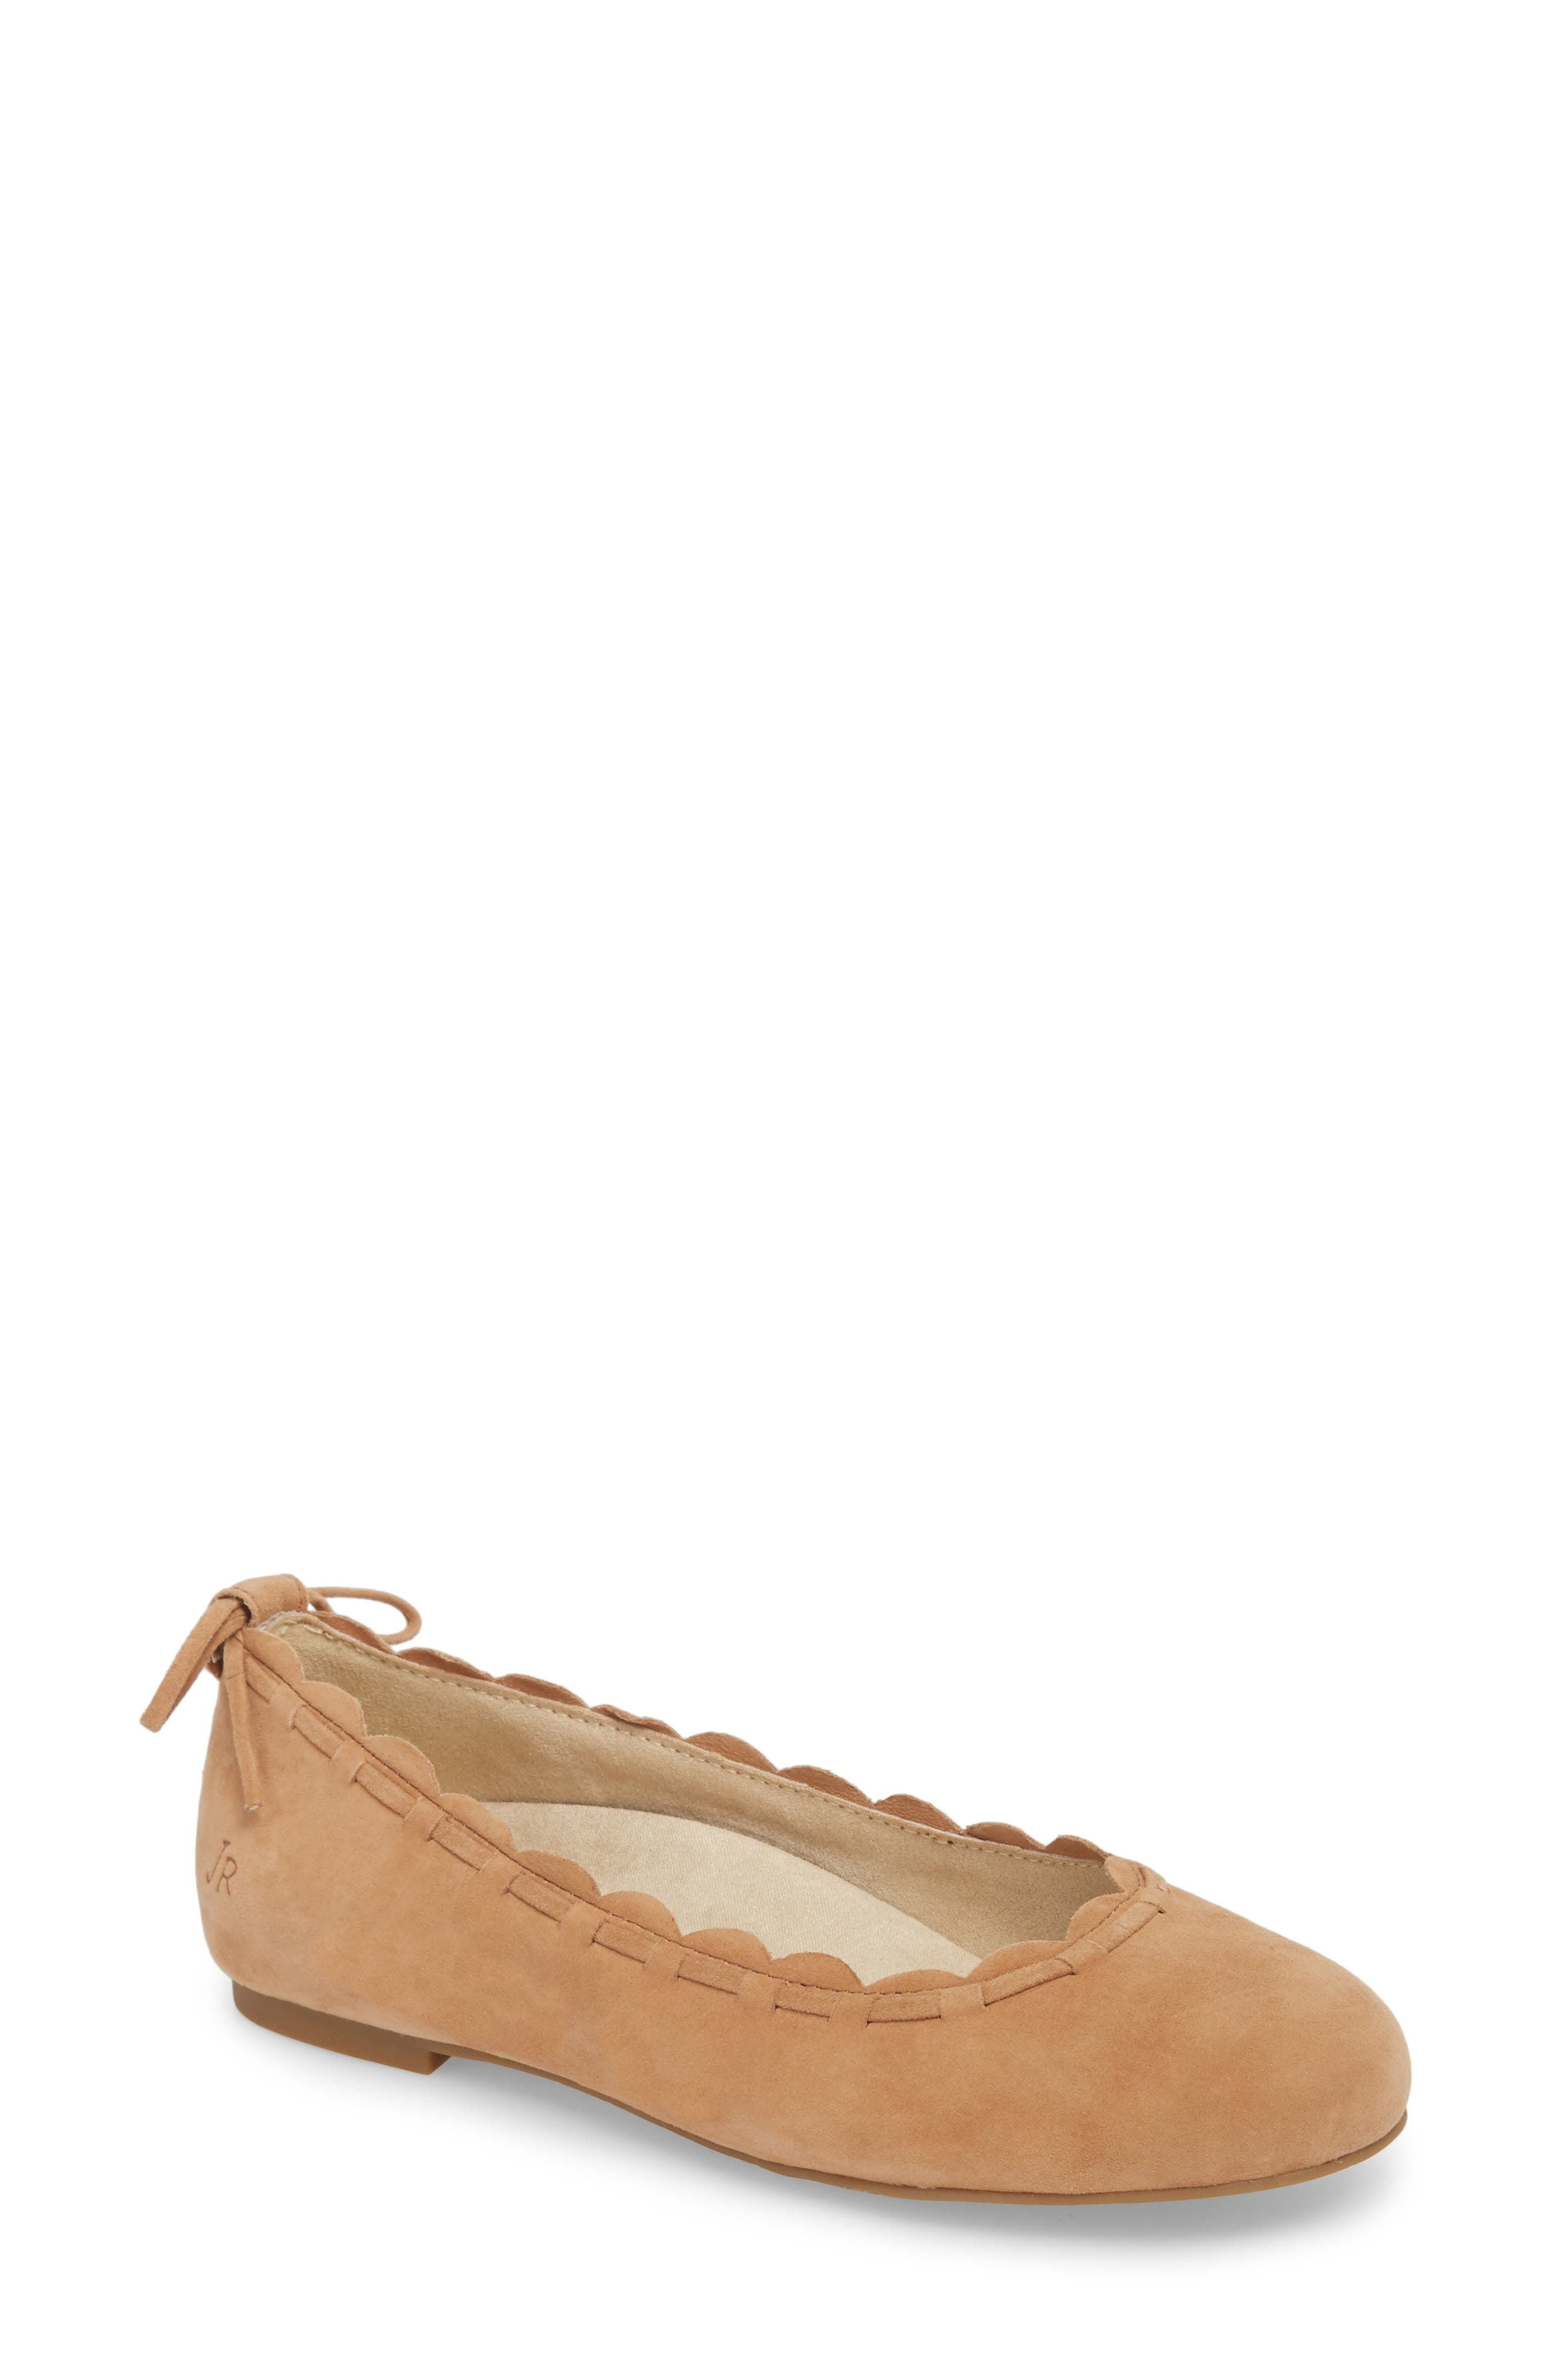 Jack Rogers Lucie Ii Scalloped Flat, Brown